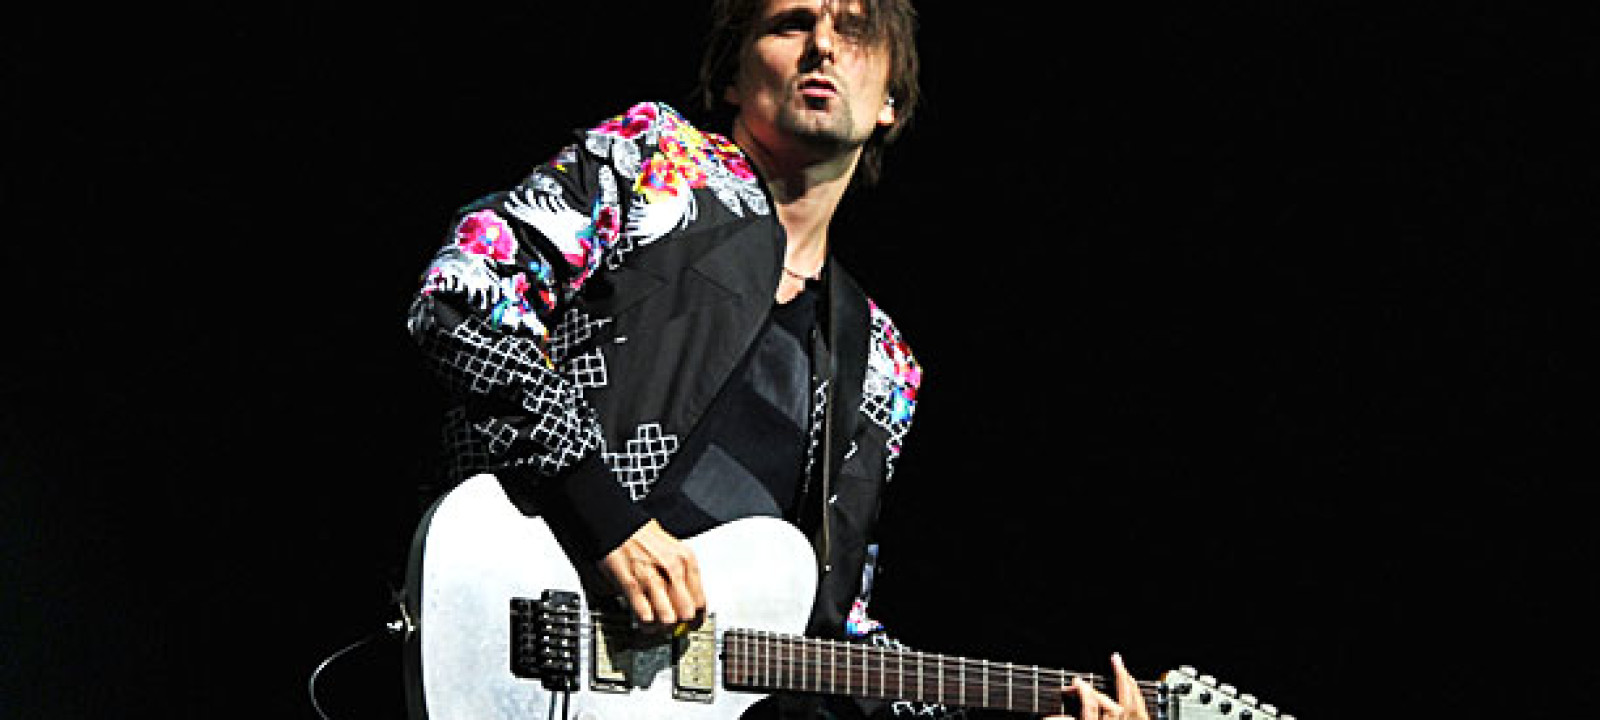 Matt Bellamy of Muse (Pic: Kevin Winter/Getty Images)